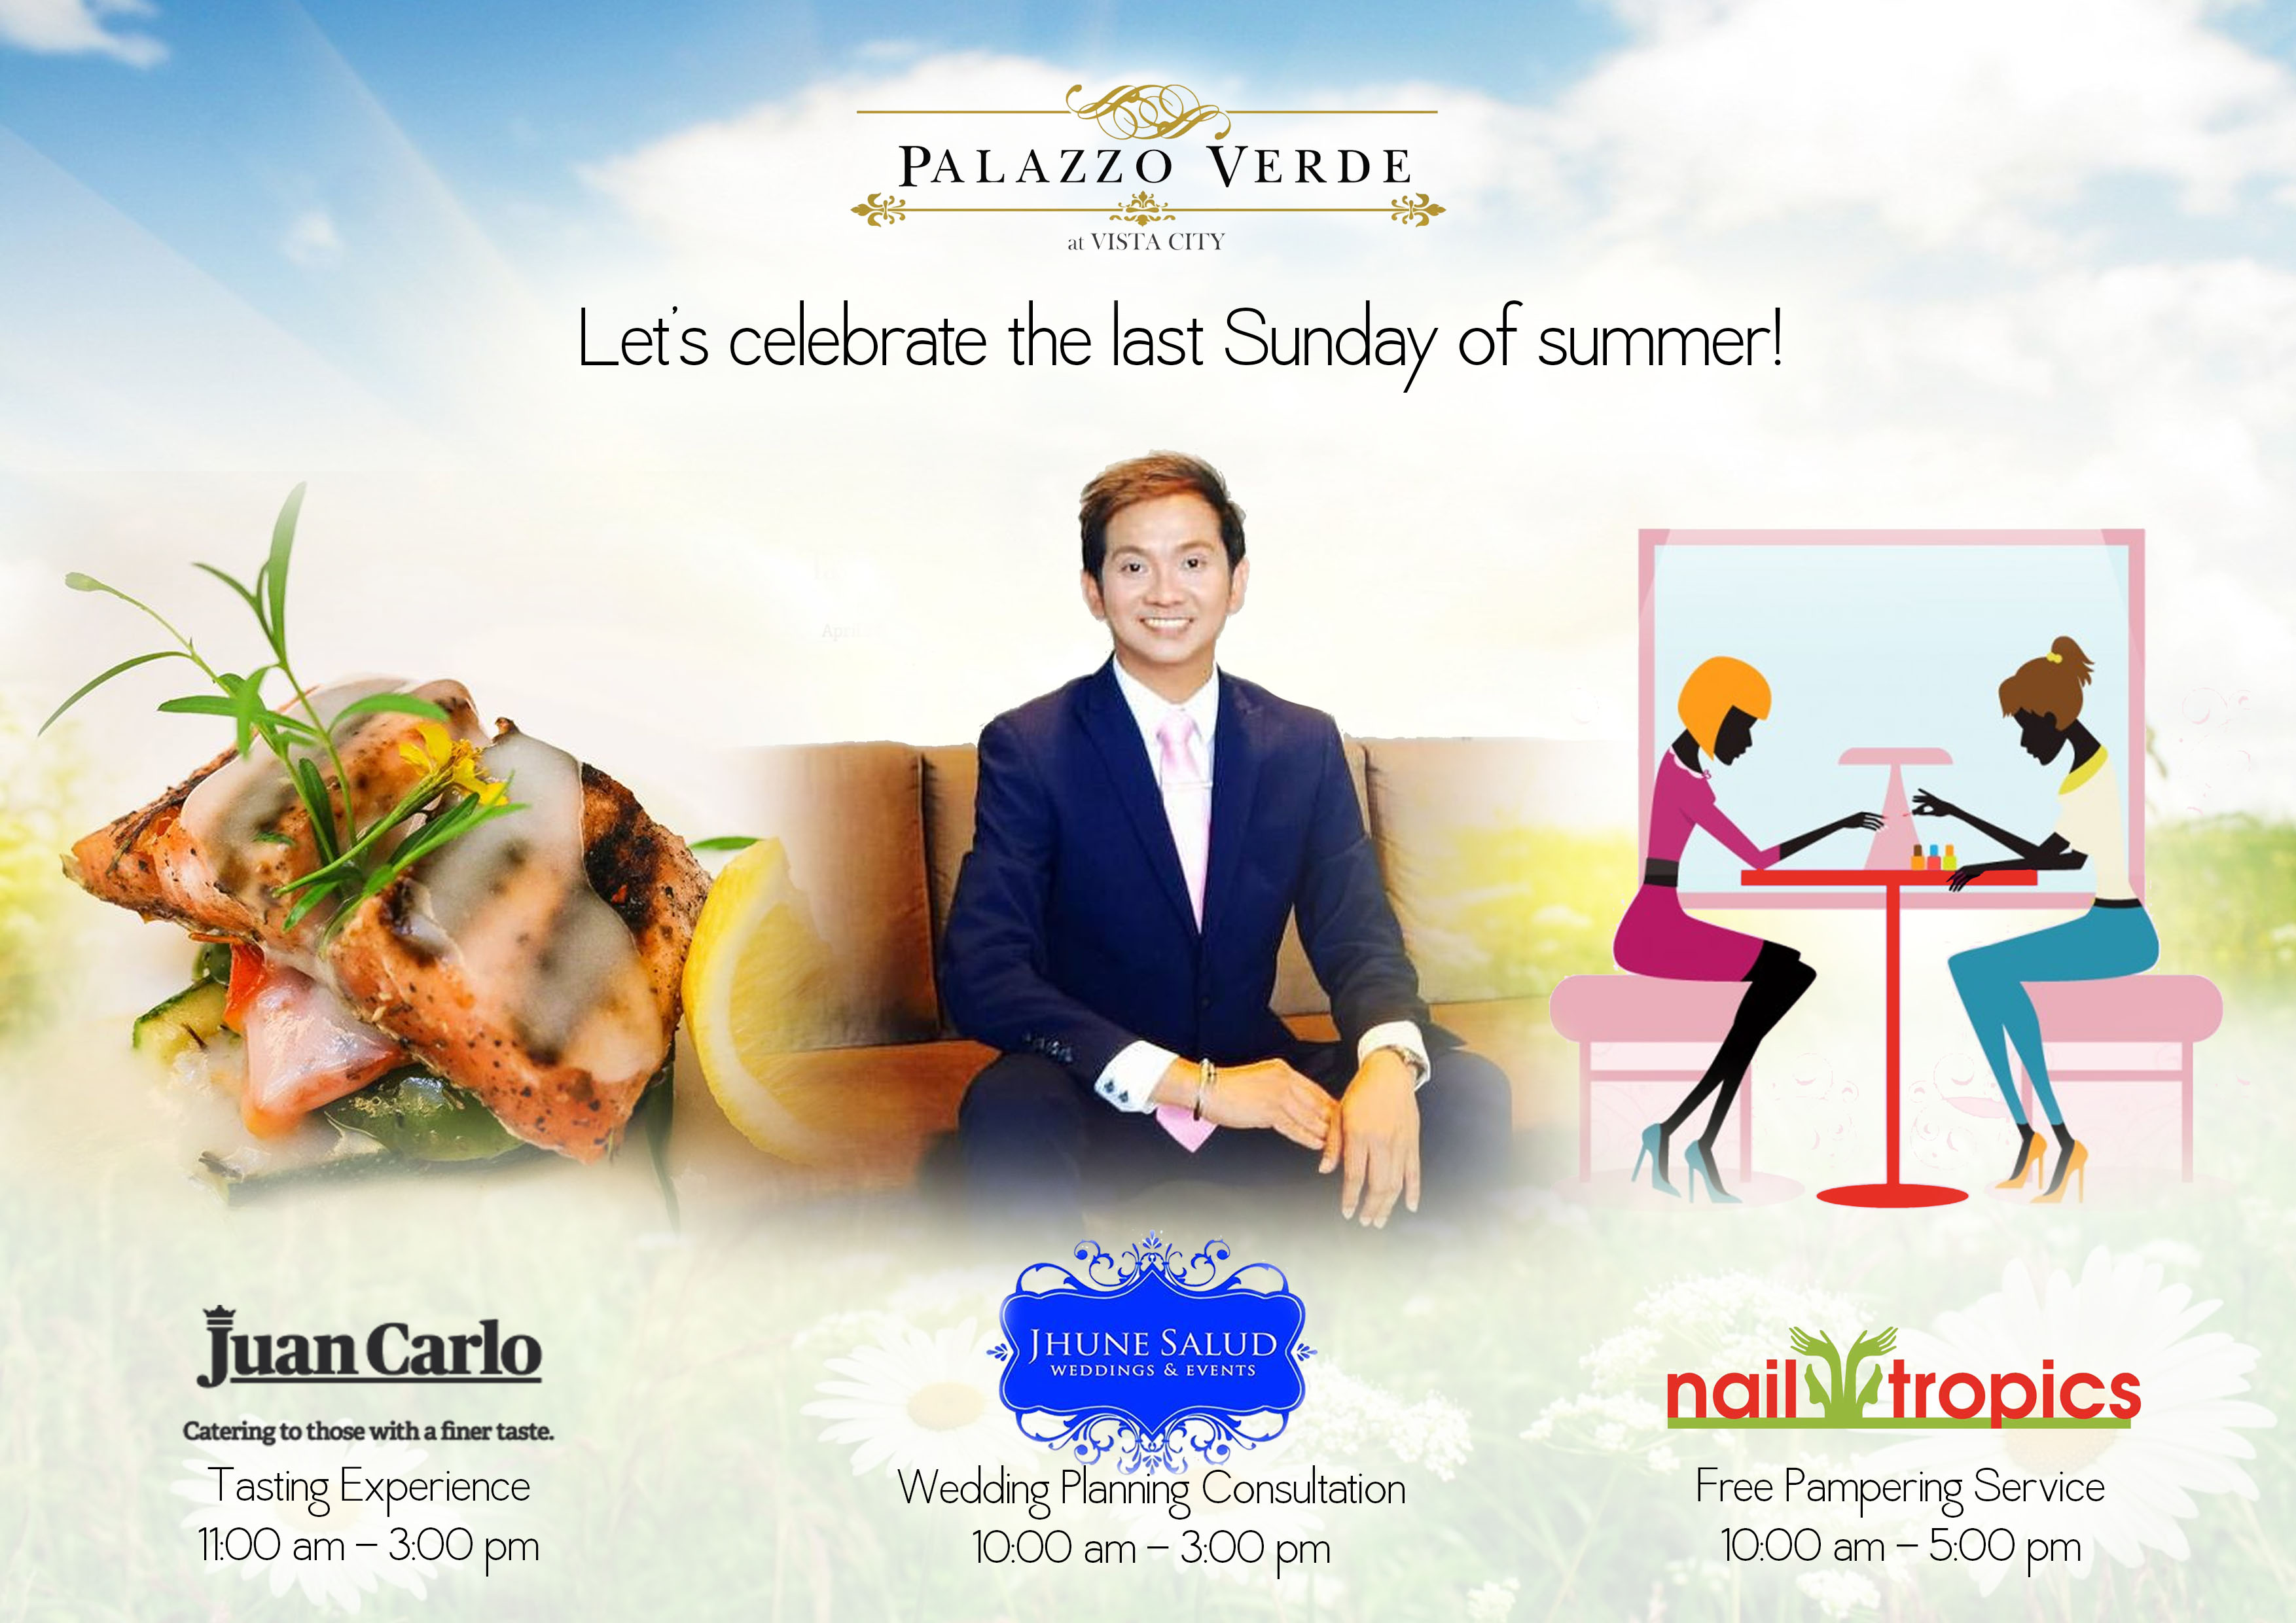 Celebrate the last weekend of Summer at Palazzo Verde!